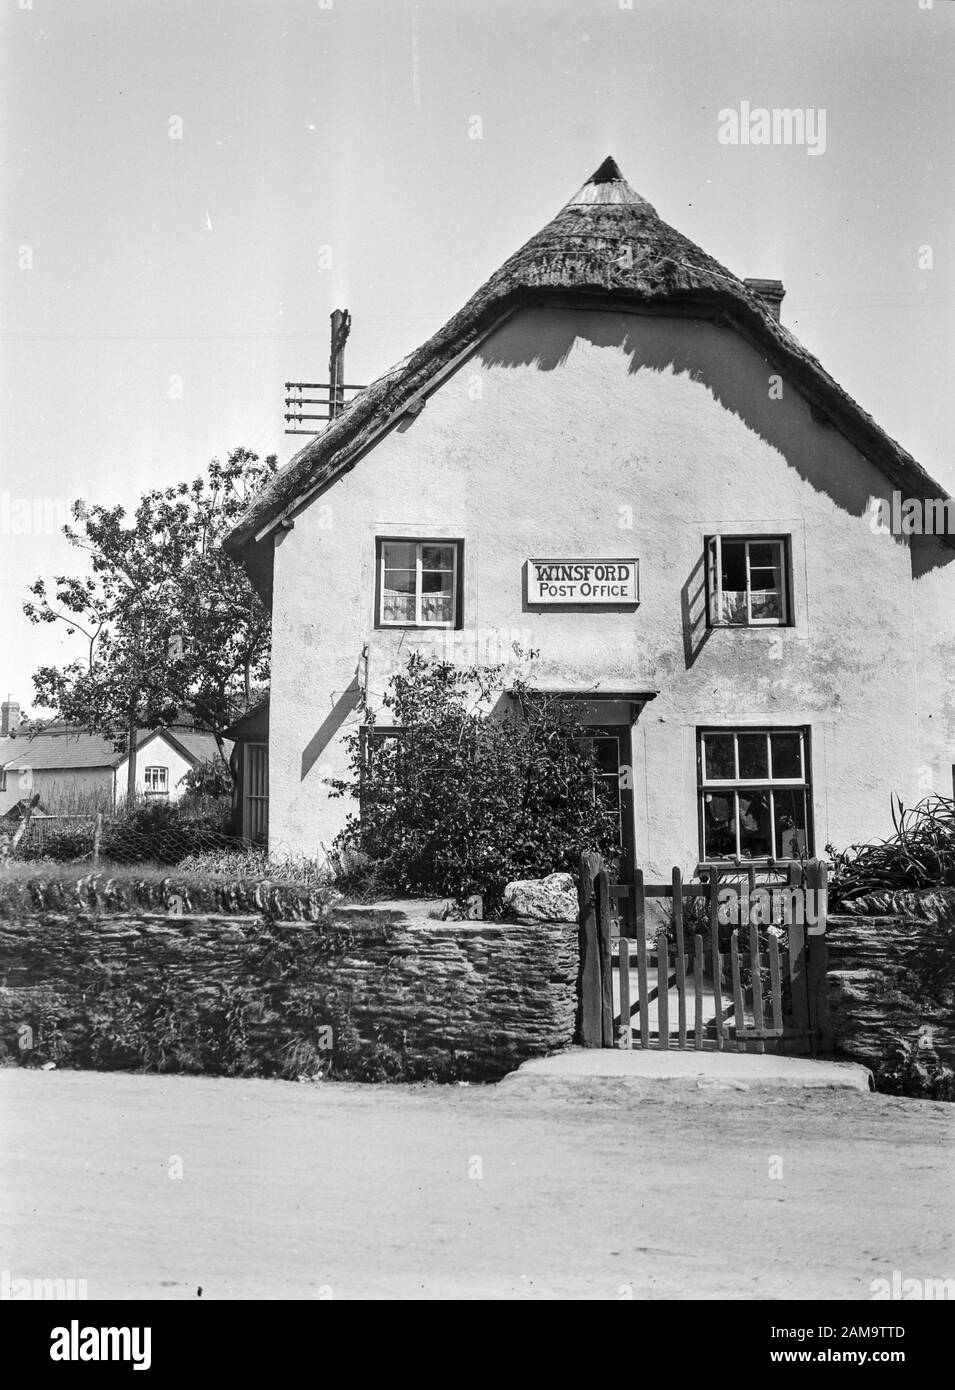 Archive image circa 1925 of Winsford village Post Office in Exmore, Somerset, UK. Scanned from the original negative Stock Photo